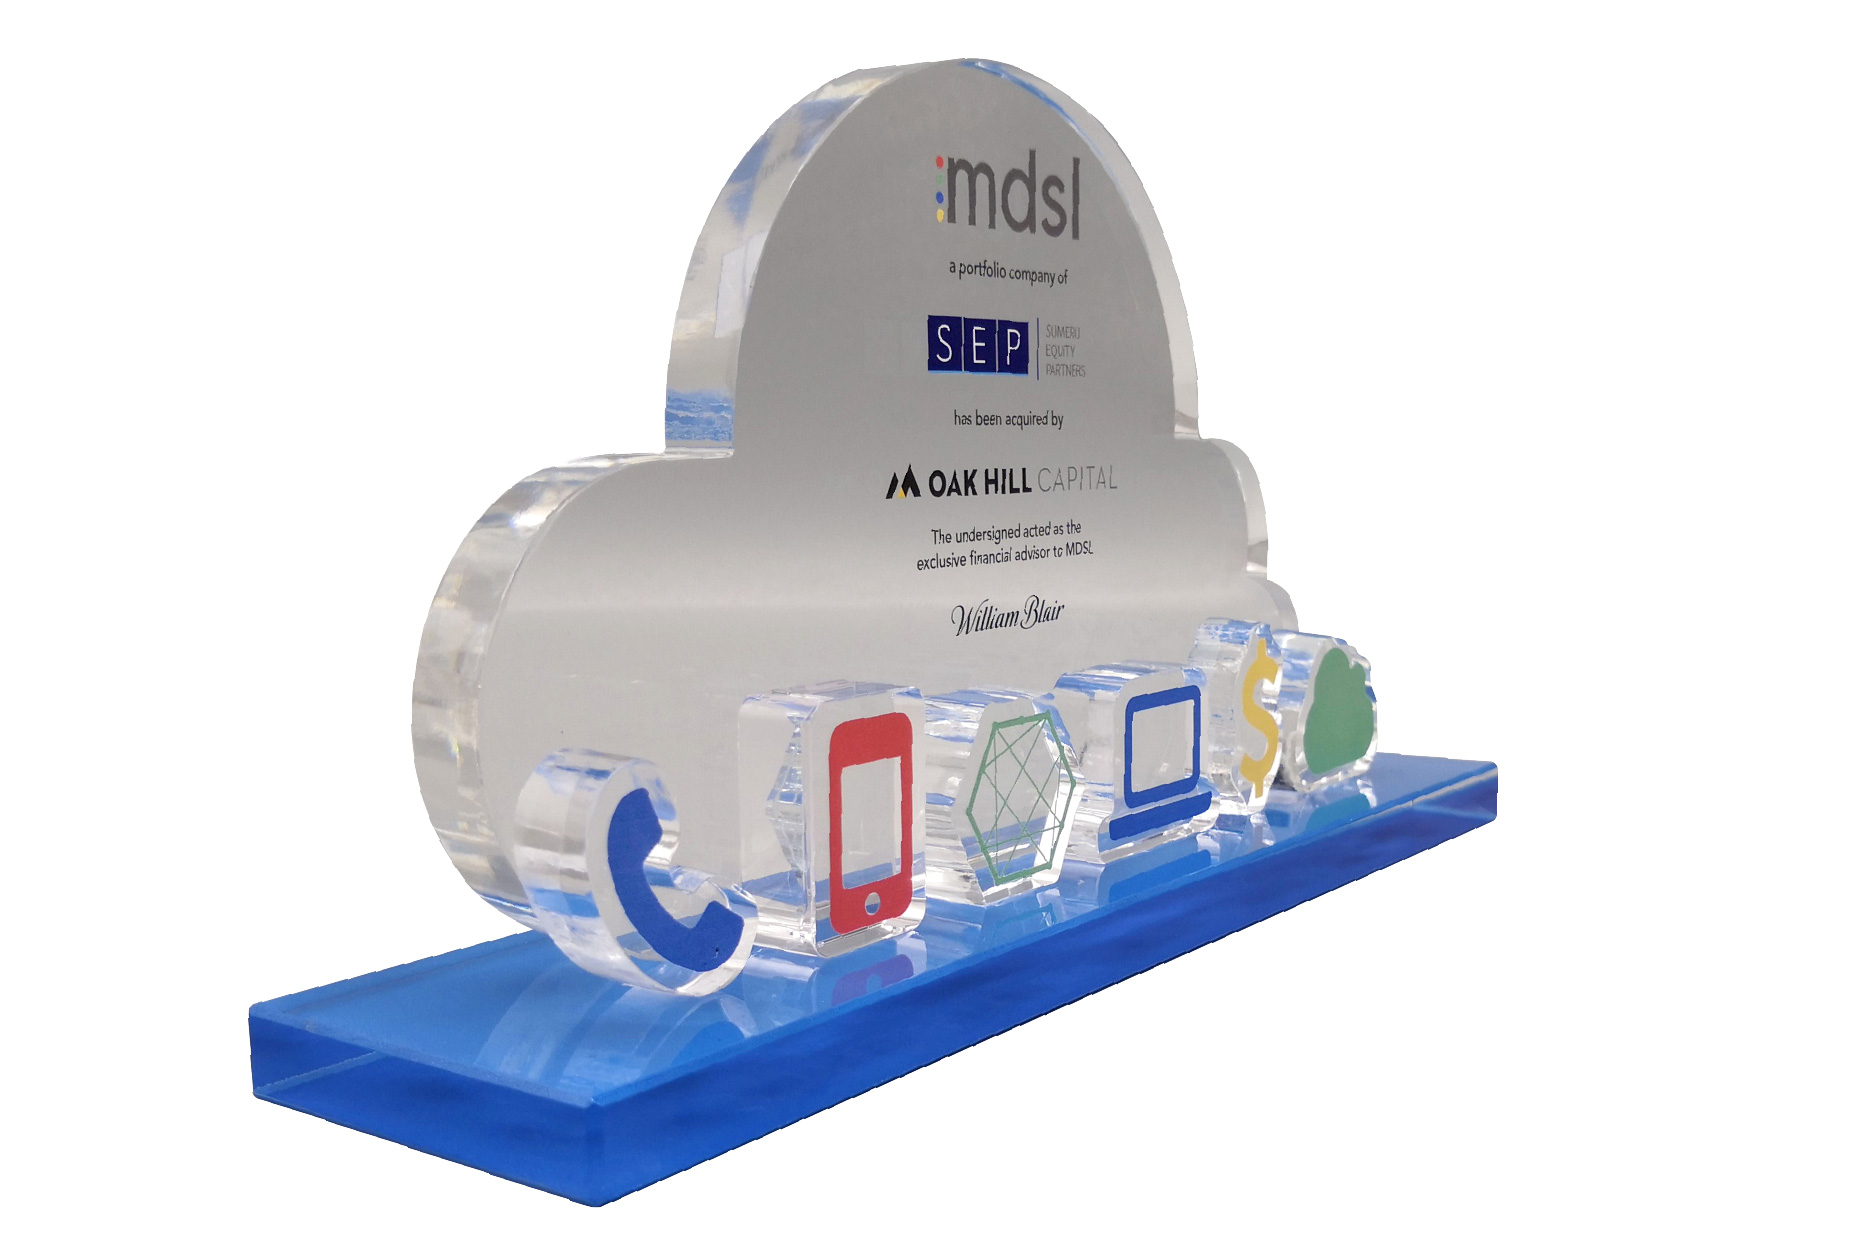 Color printed financial tombstone on crystal cloud with cut-out icons on a blue base. This deal gift was presented for a technology acquisition.